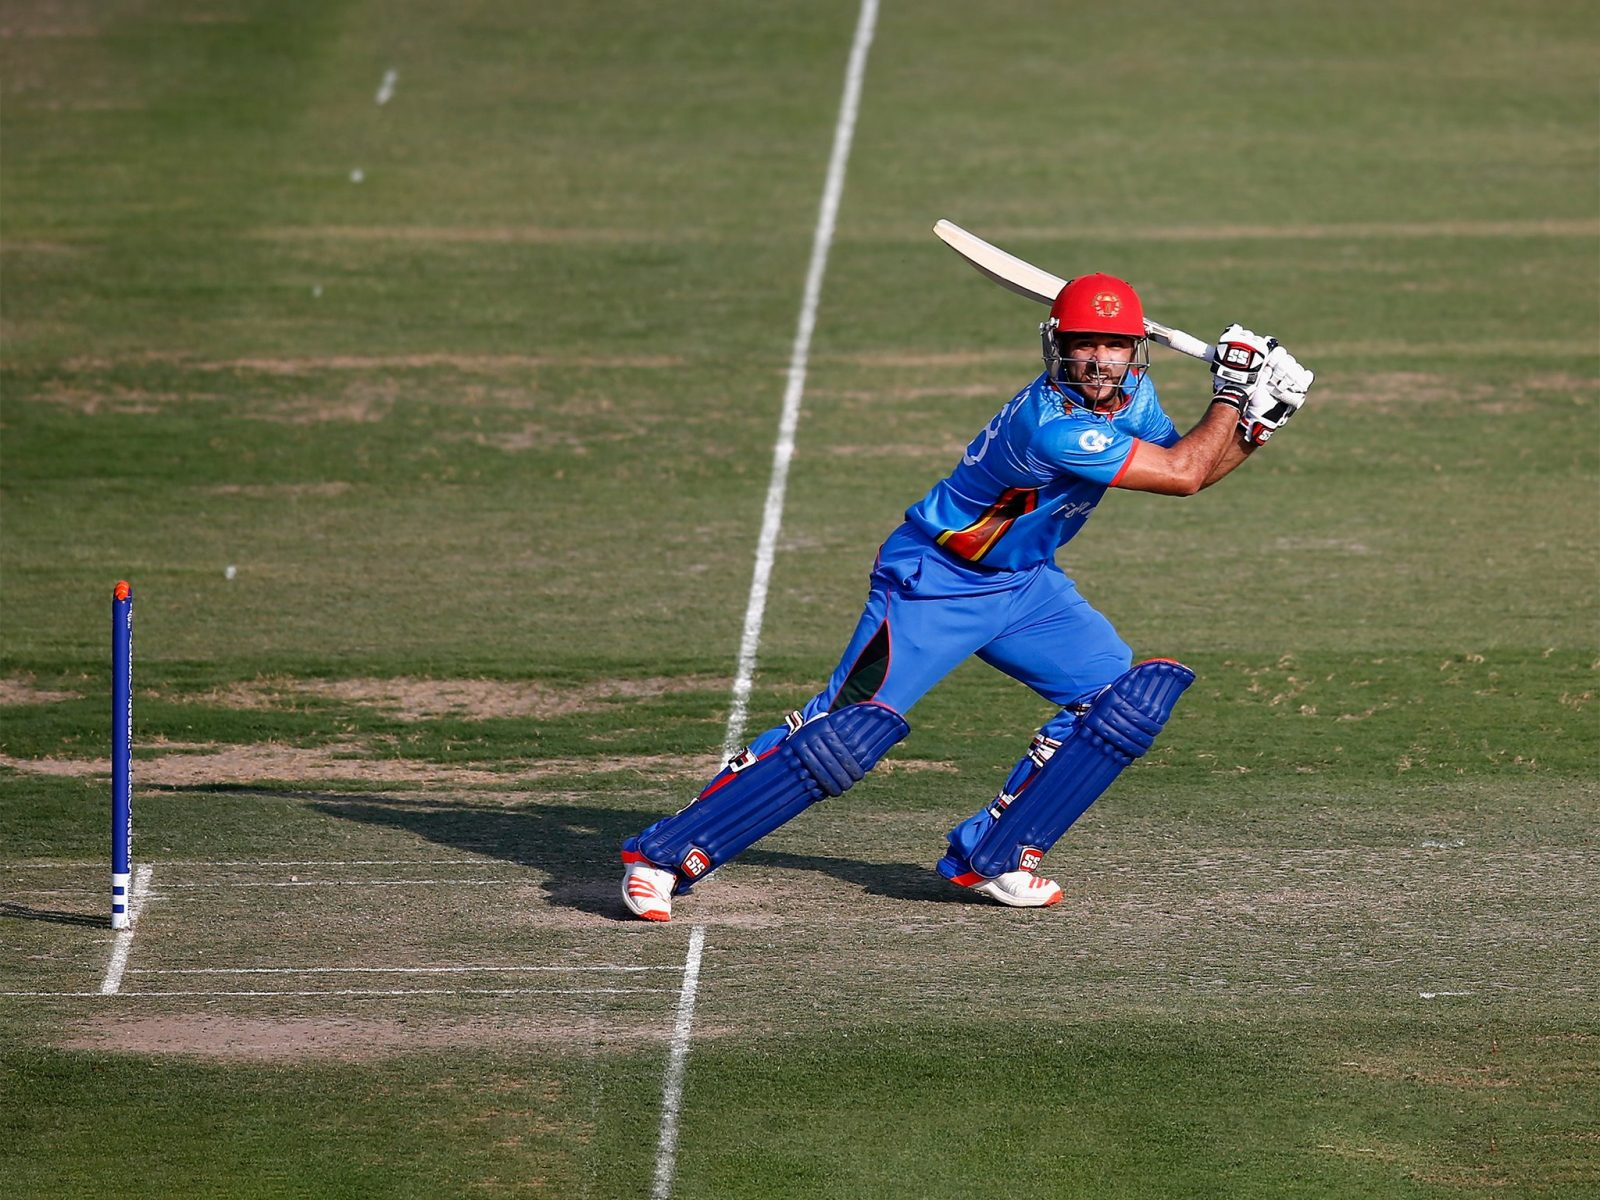 ICC Men's T20 World Cup - Afghanistan v Qualifier A2, Perth, Western Australia